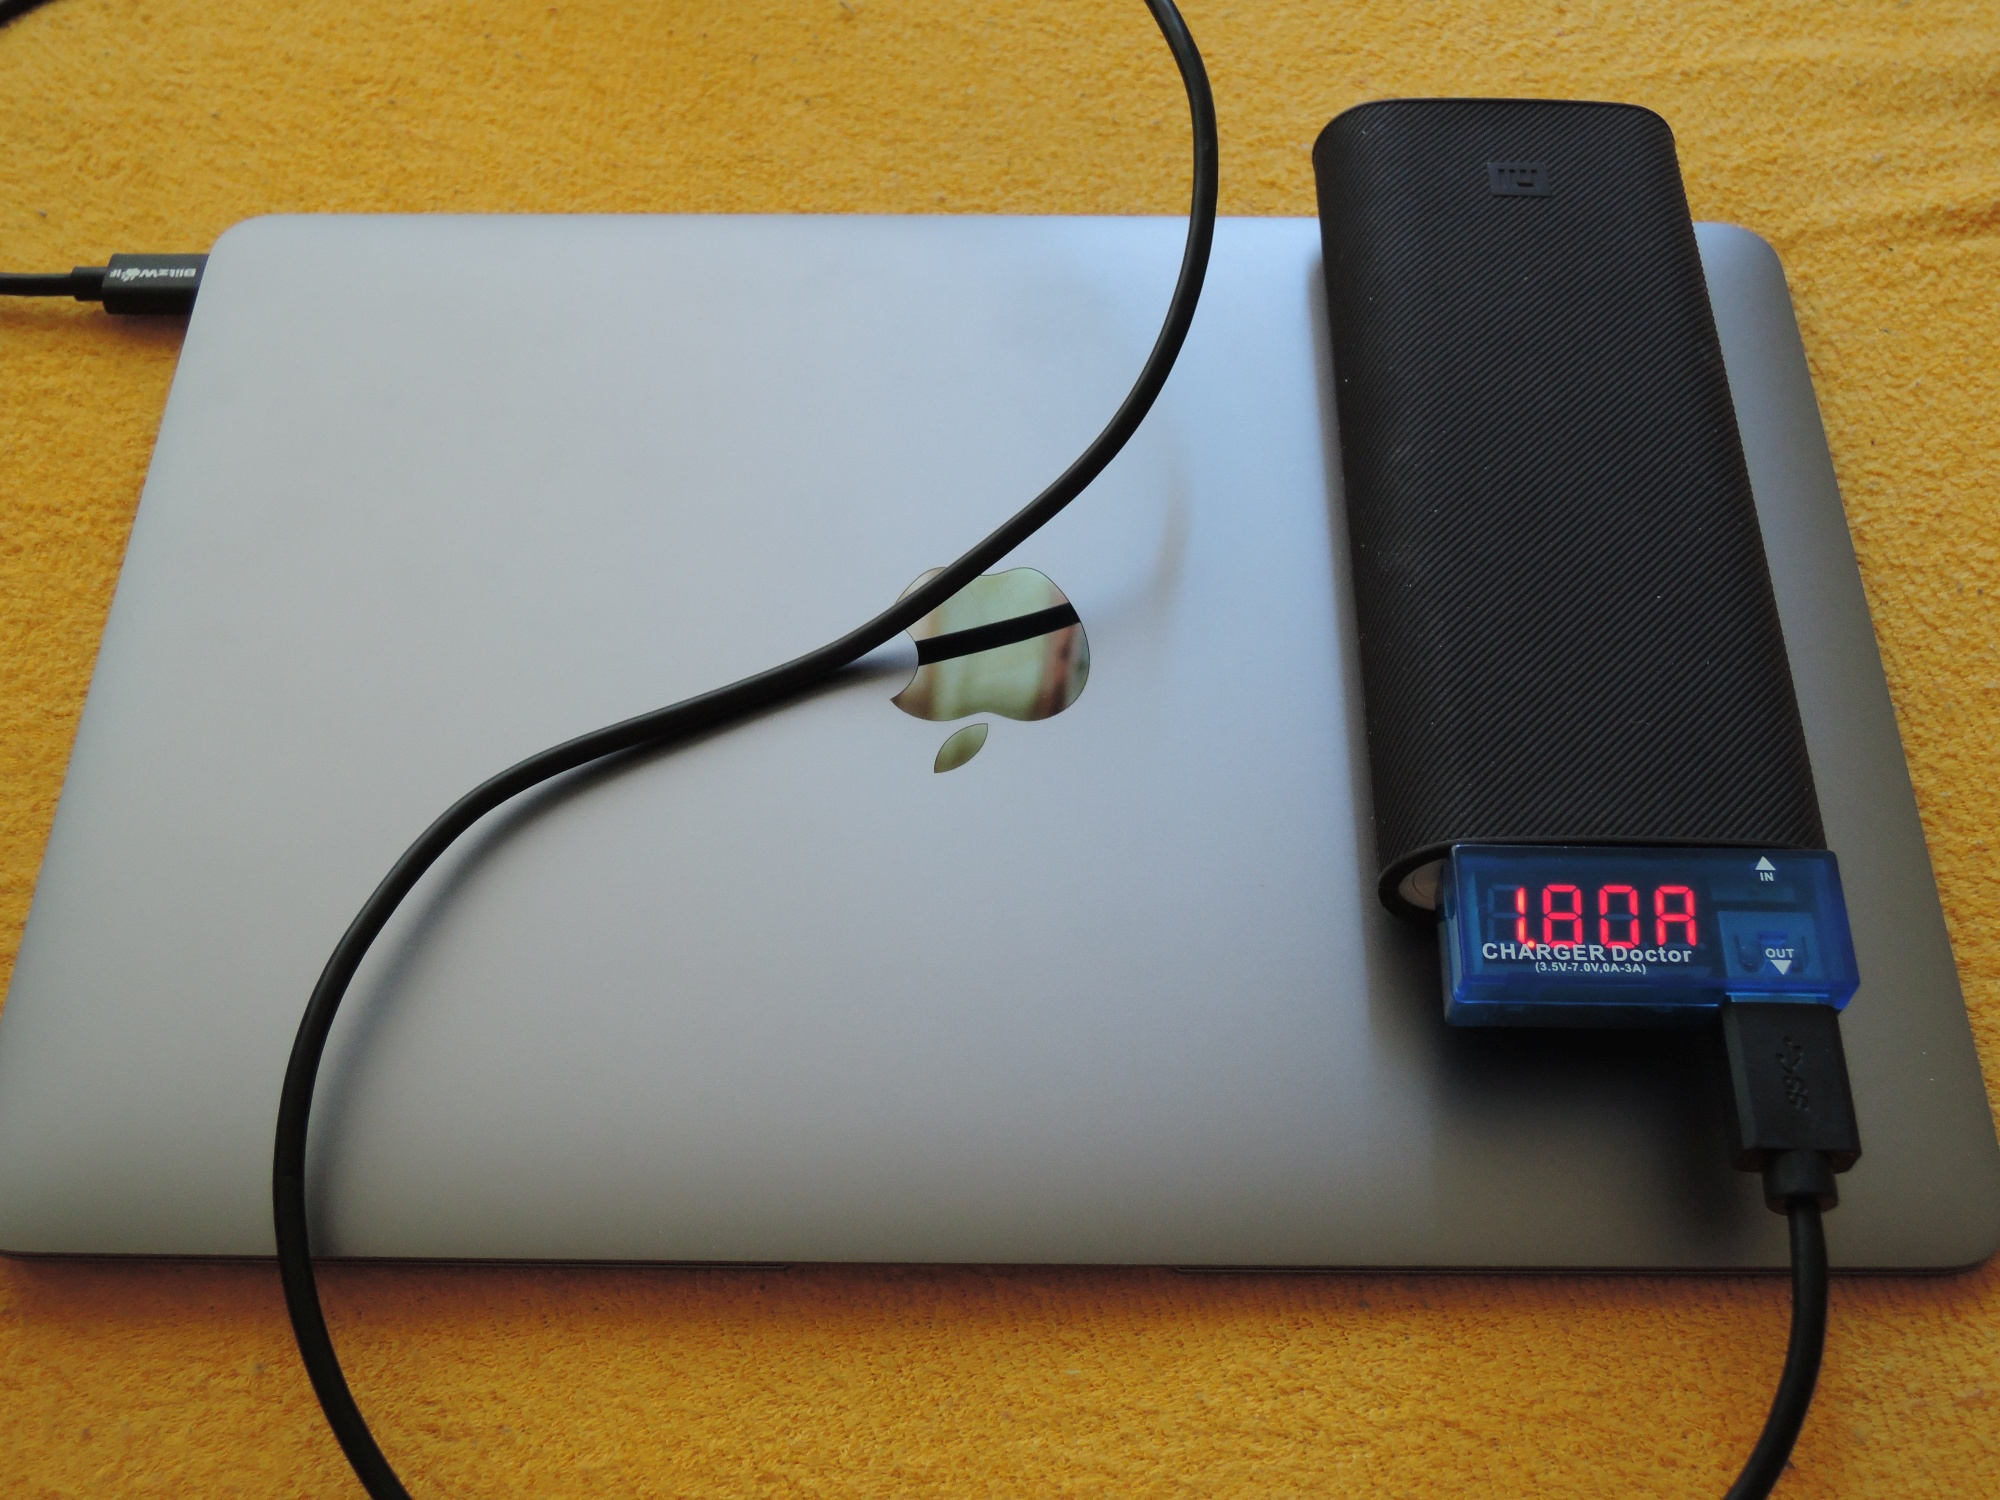 macbook-12-xiaomi-16000-mah